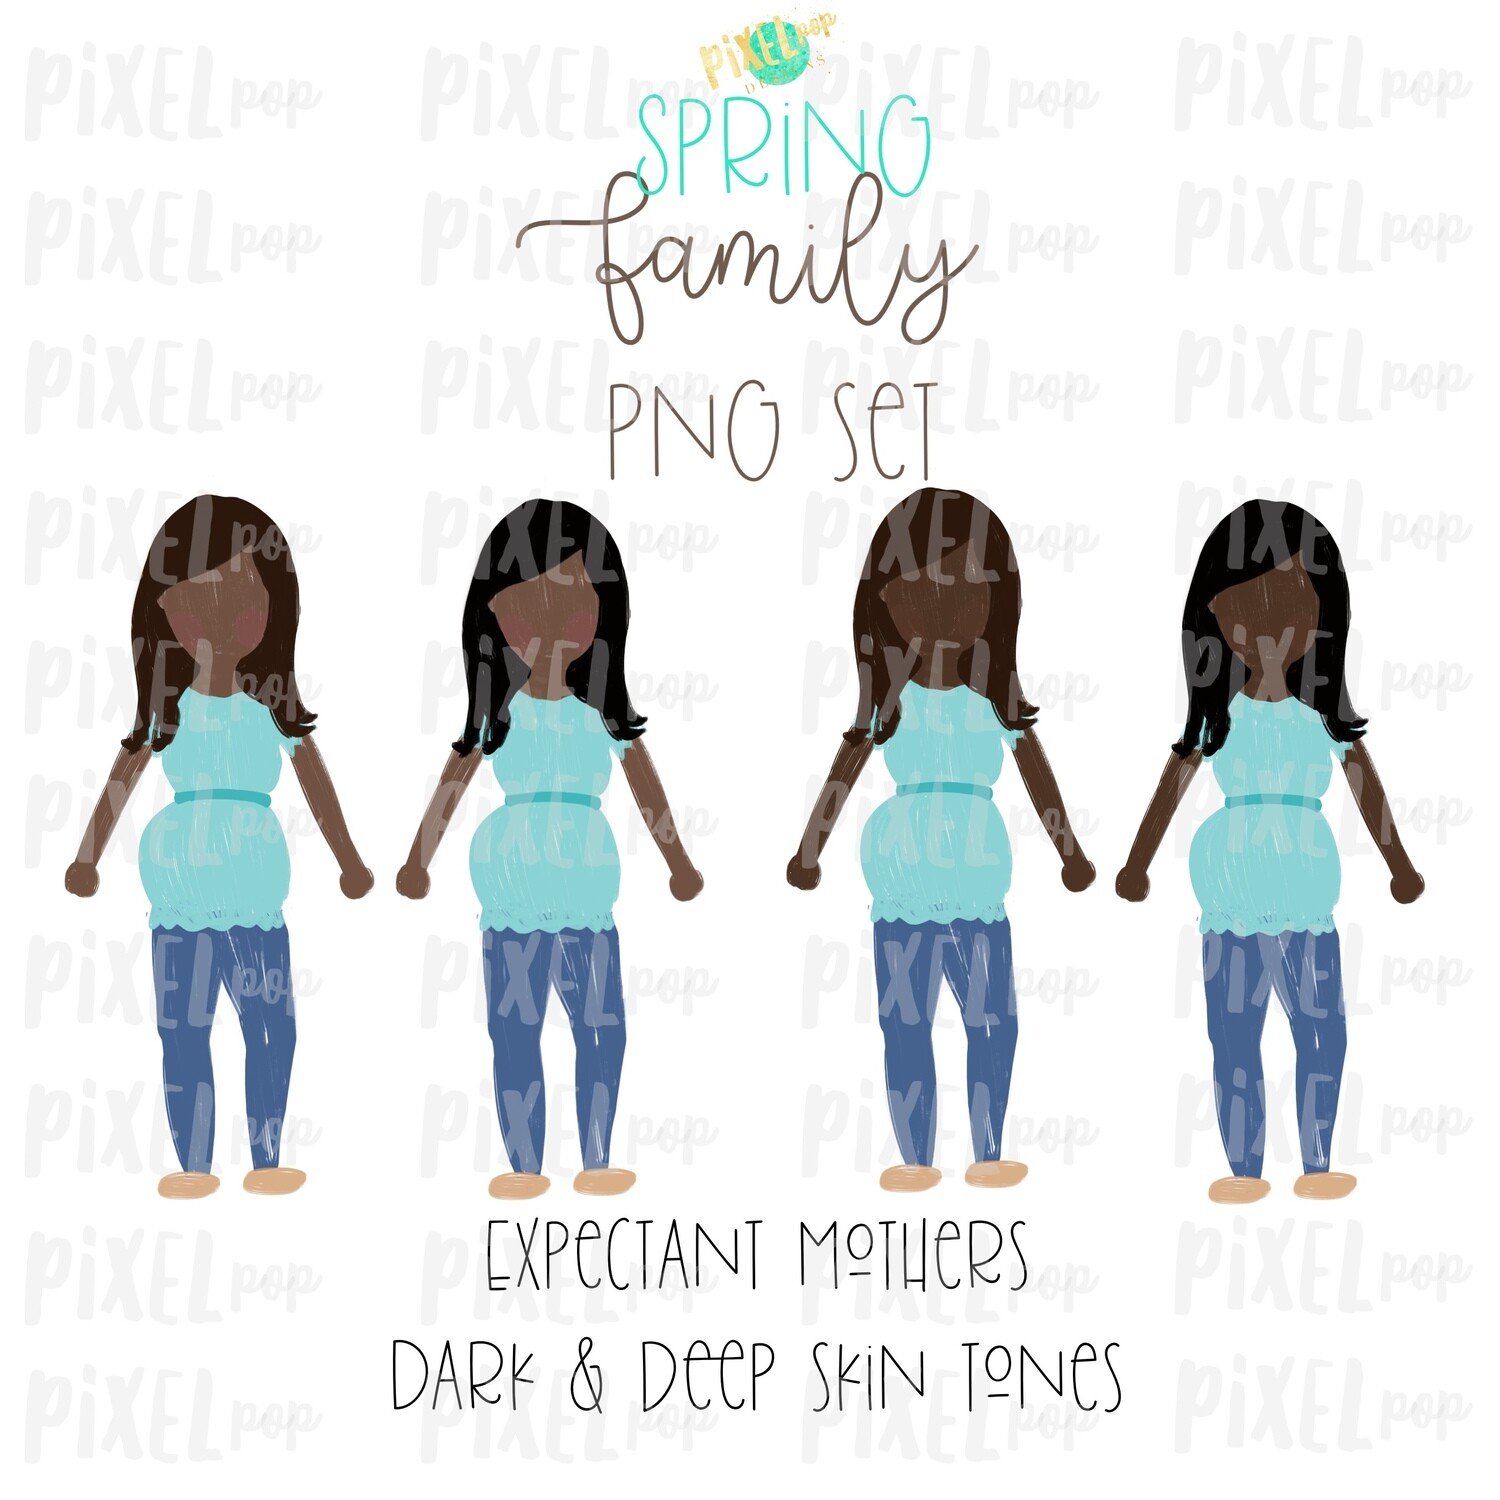 Expectant Pregnant Mothers Dark & Deep Skin Tones Stick People Figure Members PNG | Family Ornament | Family Portrait Images | Digital Art